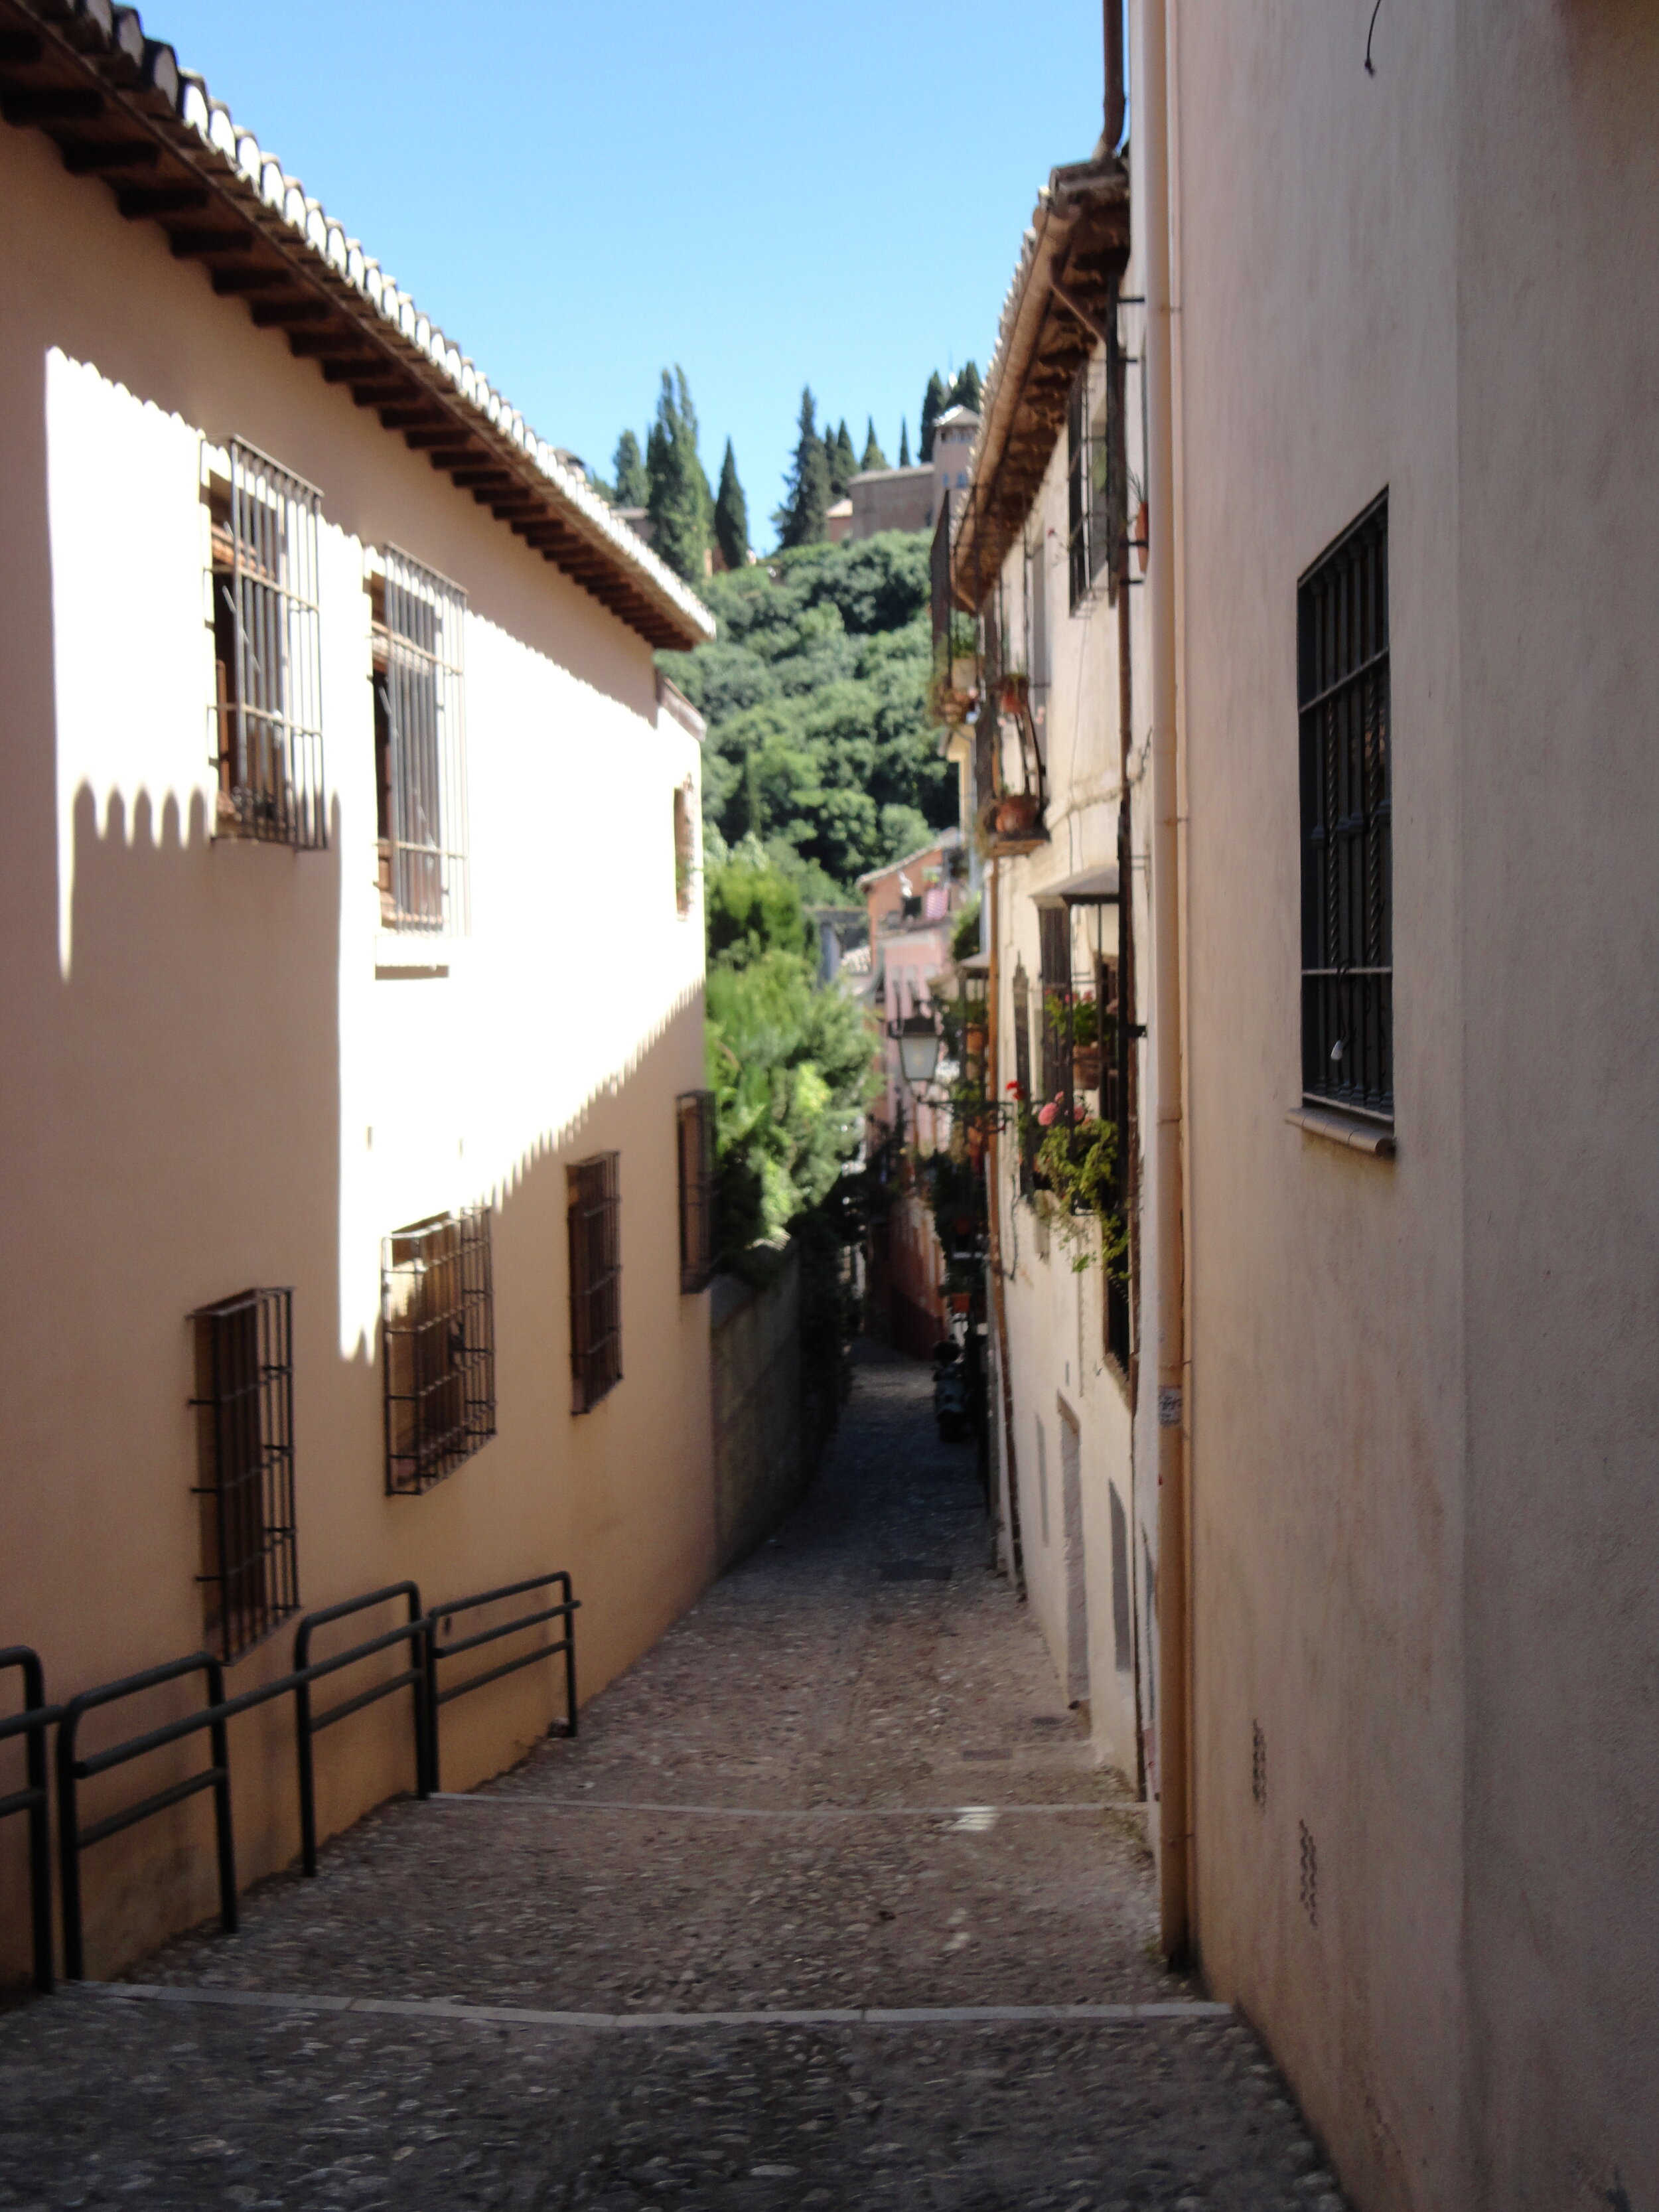 Windy streets with a view of the Alhambra. Granada, Spain